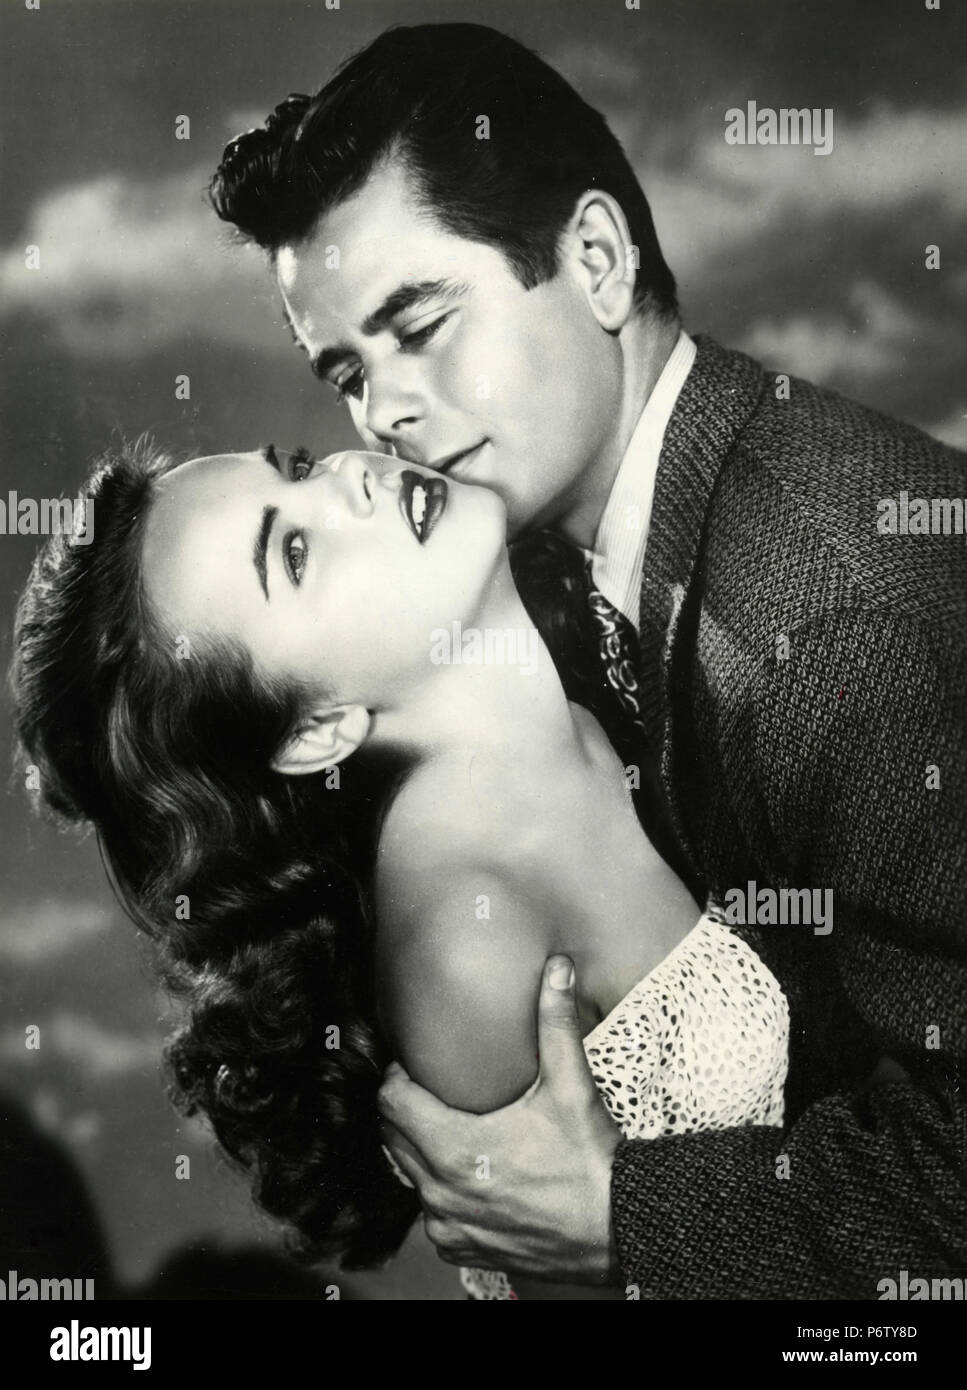 American actors Glenn Ford and Terry Moore in the movie The Return of October, 1948 - Stock Image